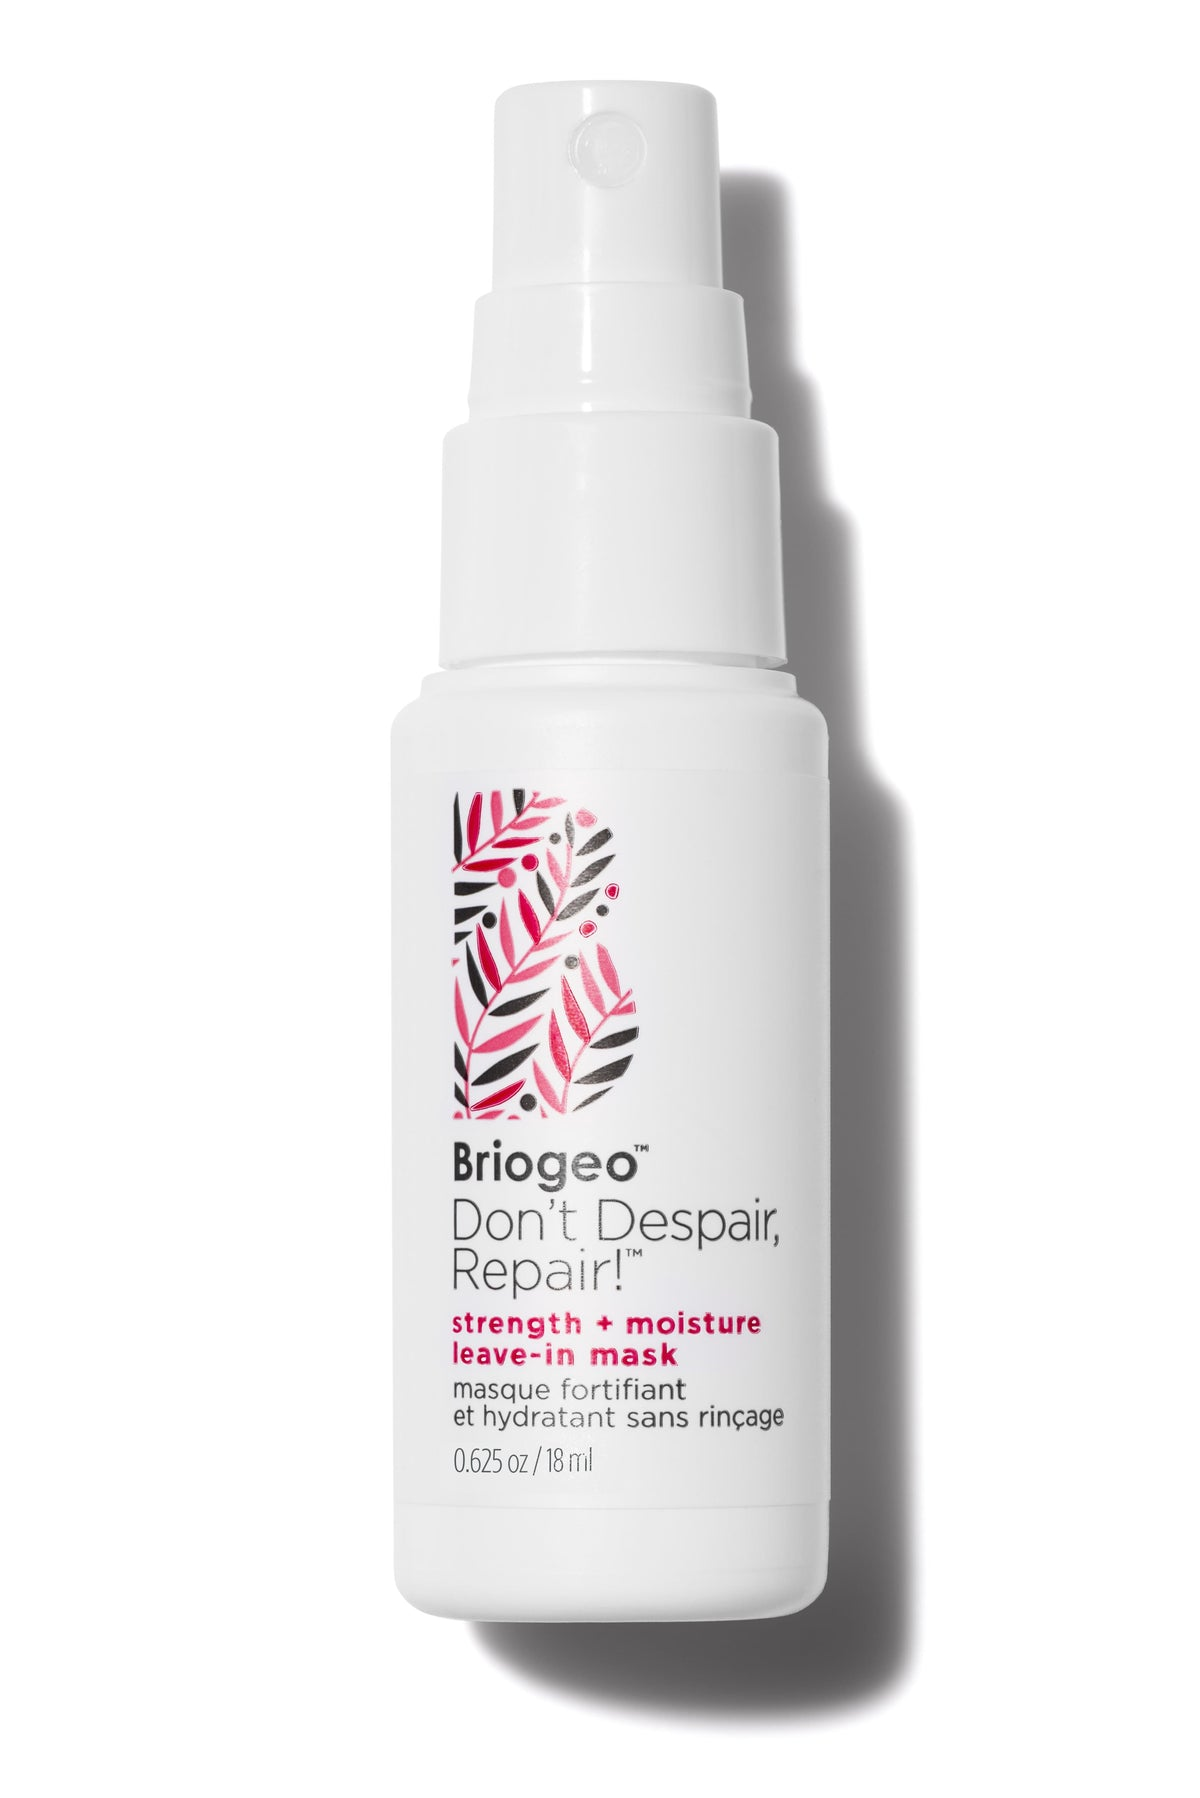 Don't Despair, Repair! Strength + Moisture Leave-In Mask 0.625oz